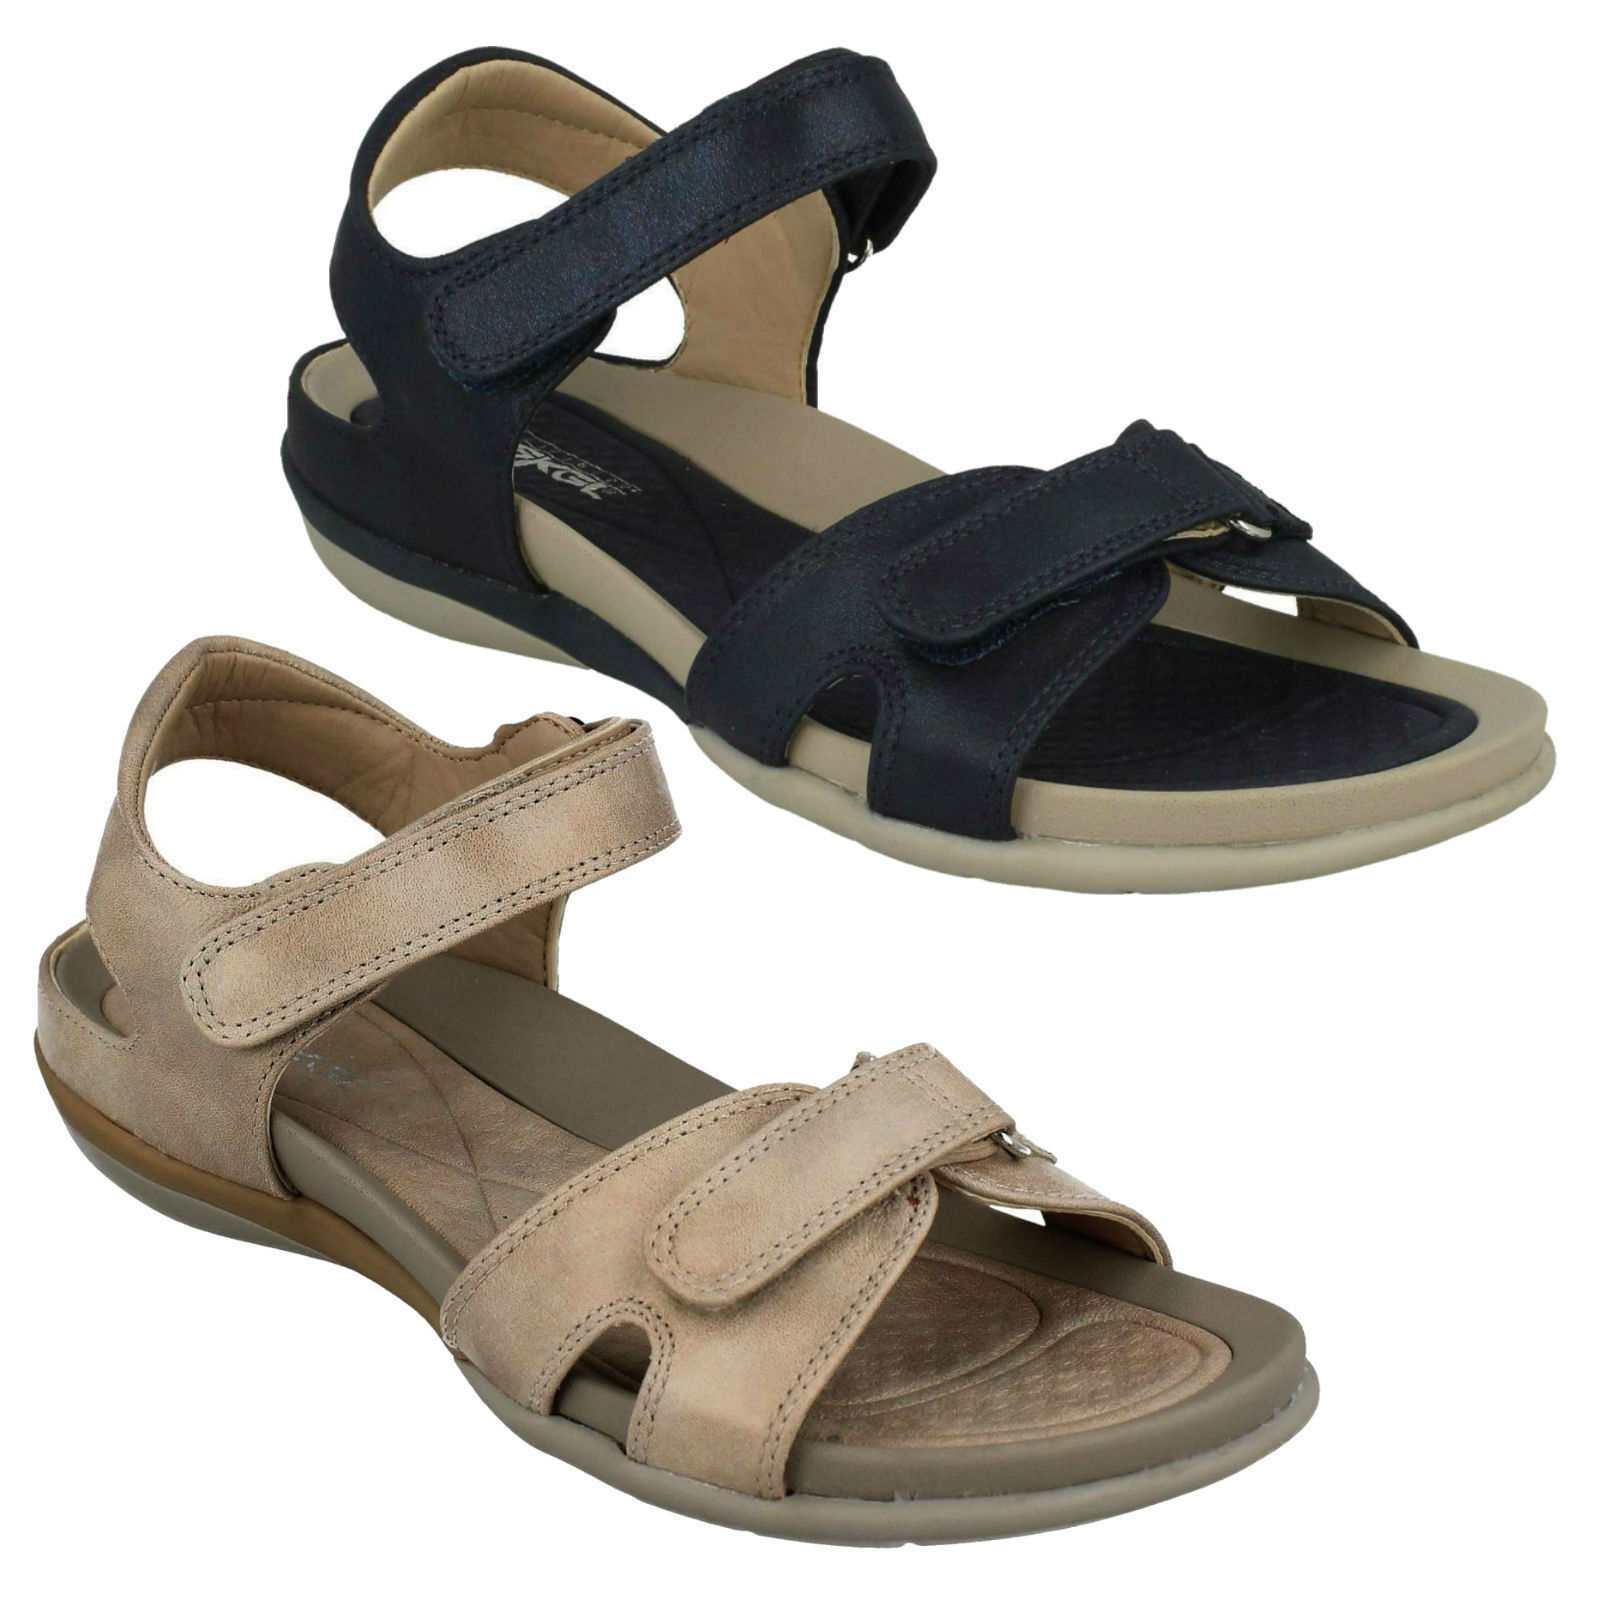 V9462  RIEKER Damenschuhe LADIES OPEN TOE CASUAL SUMMER SANDALS BEACH Schuhe SIZES